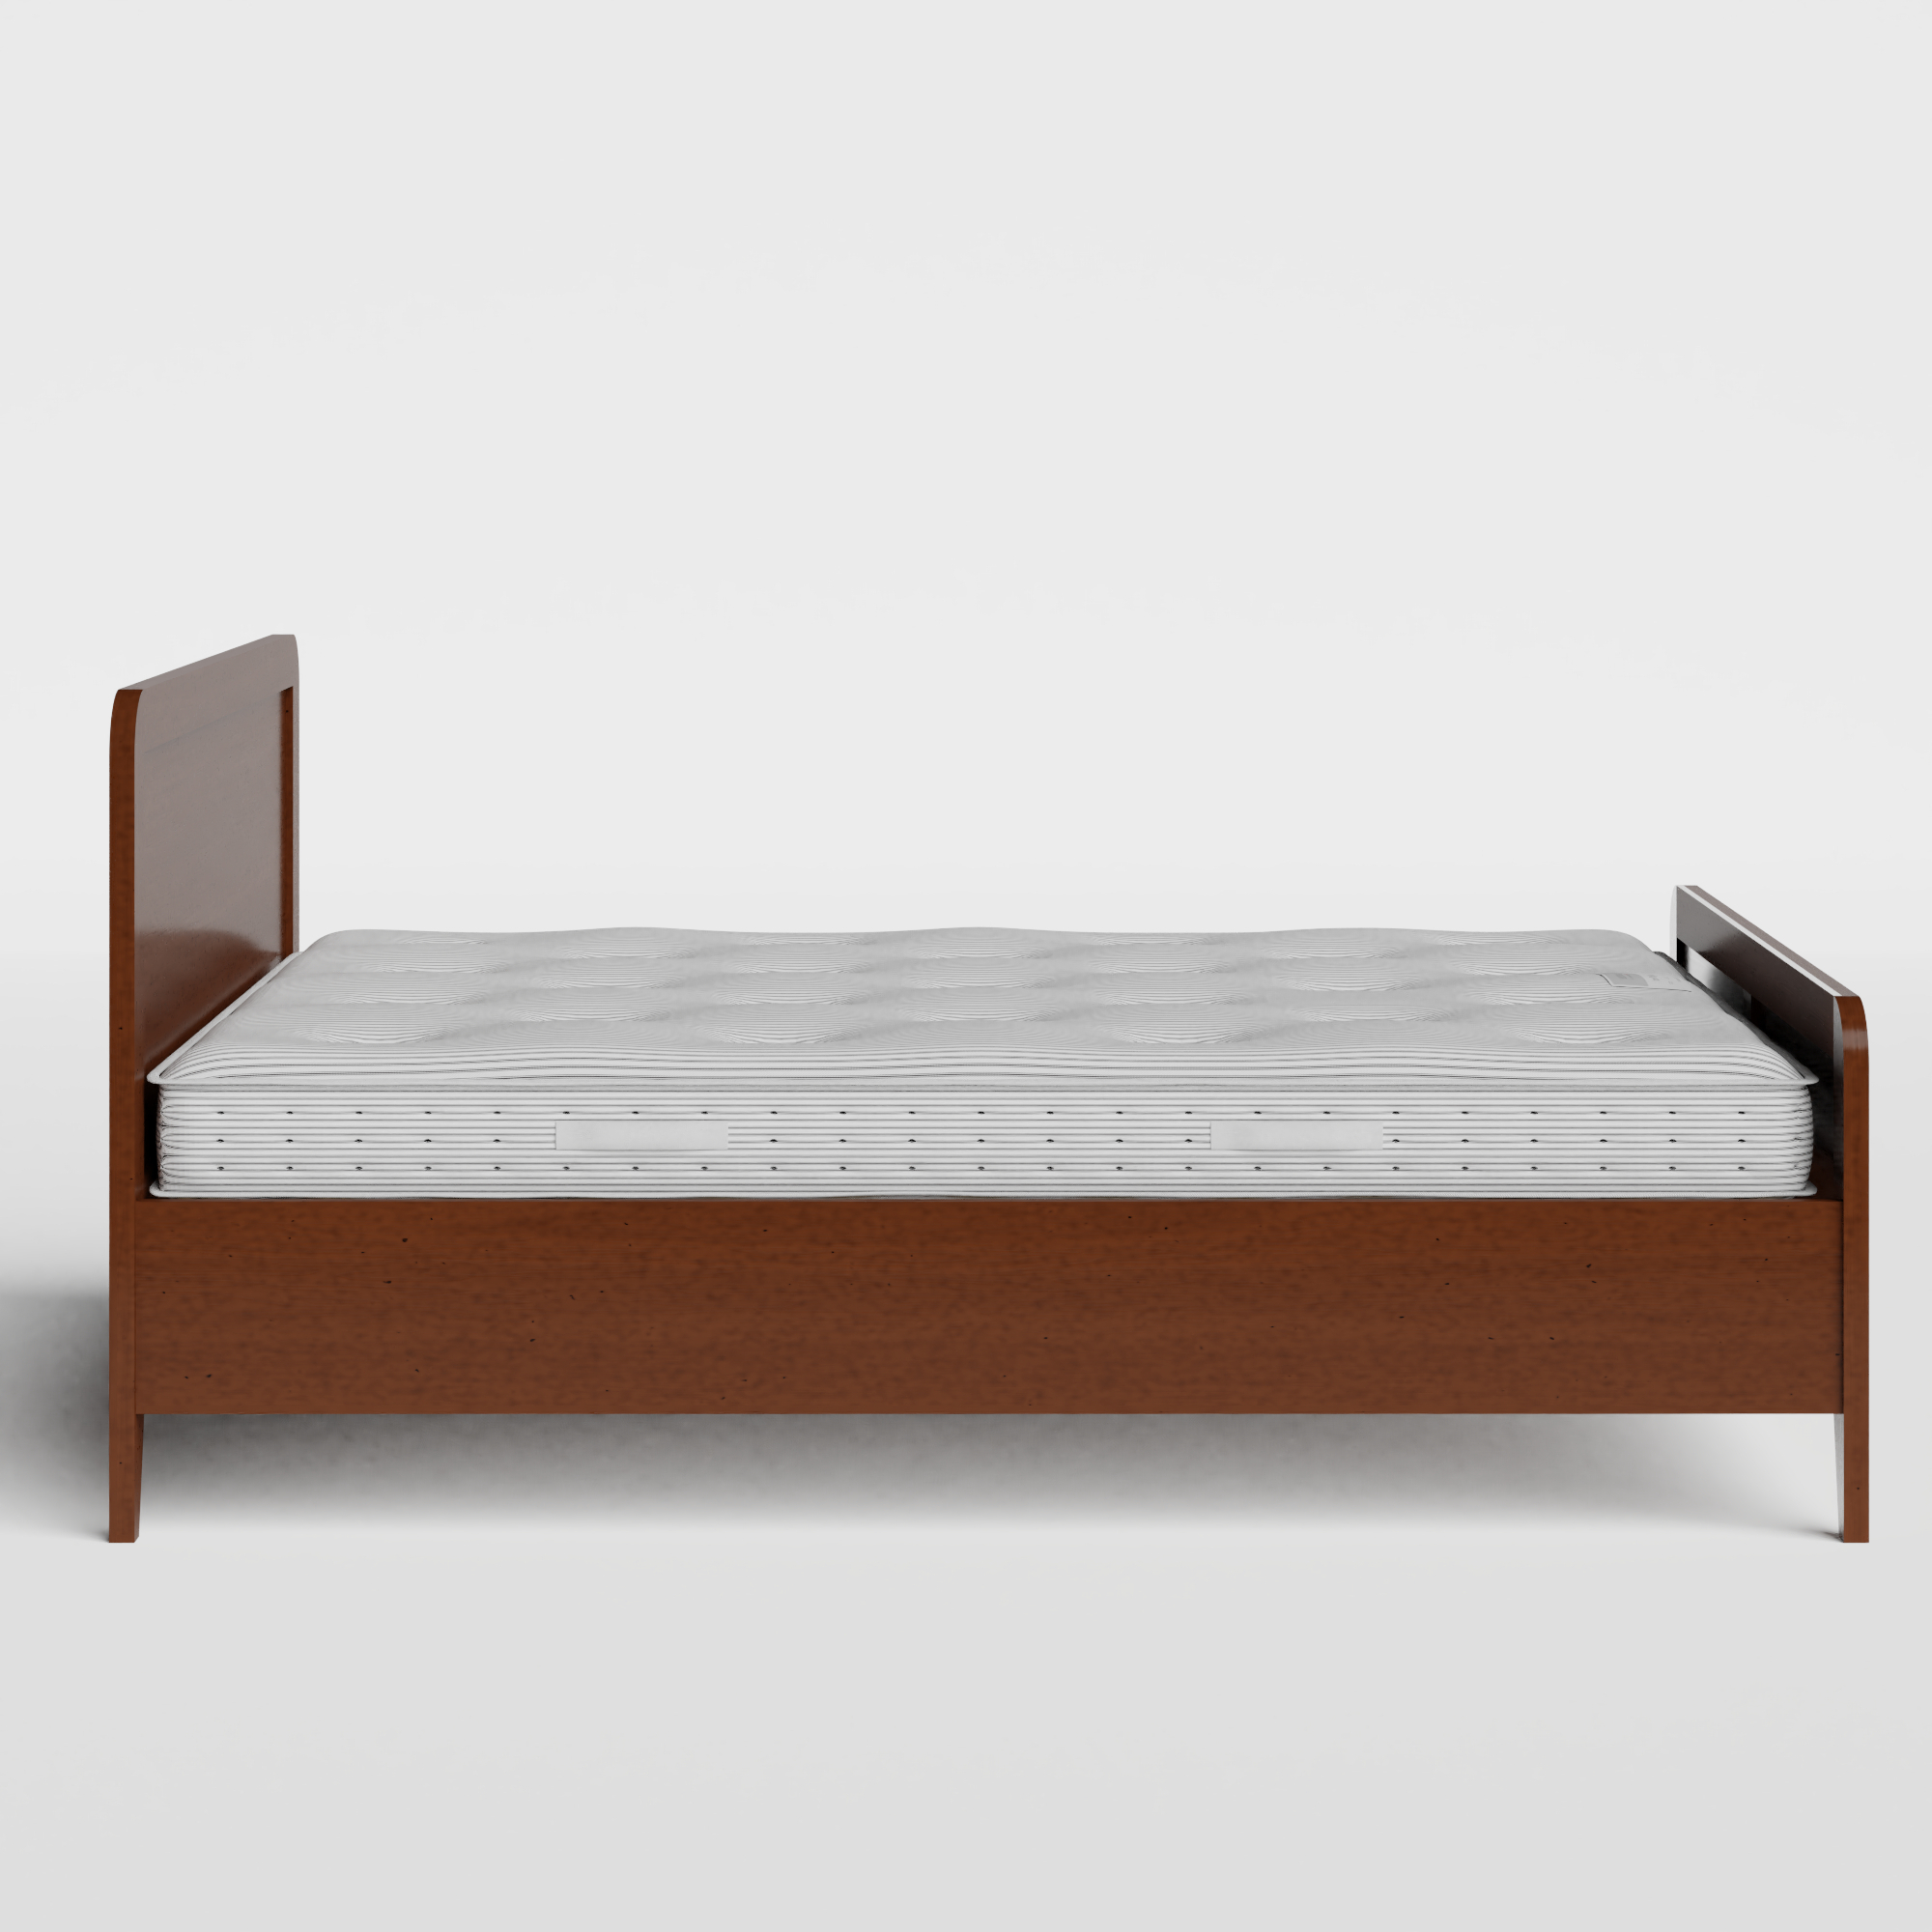 Keats wood bed in dark cherry with Juno mattress